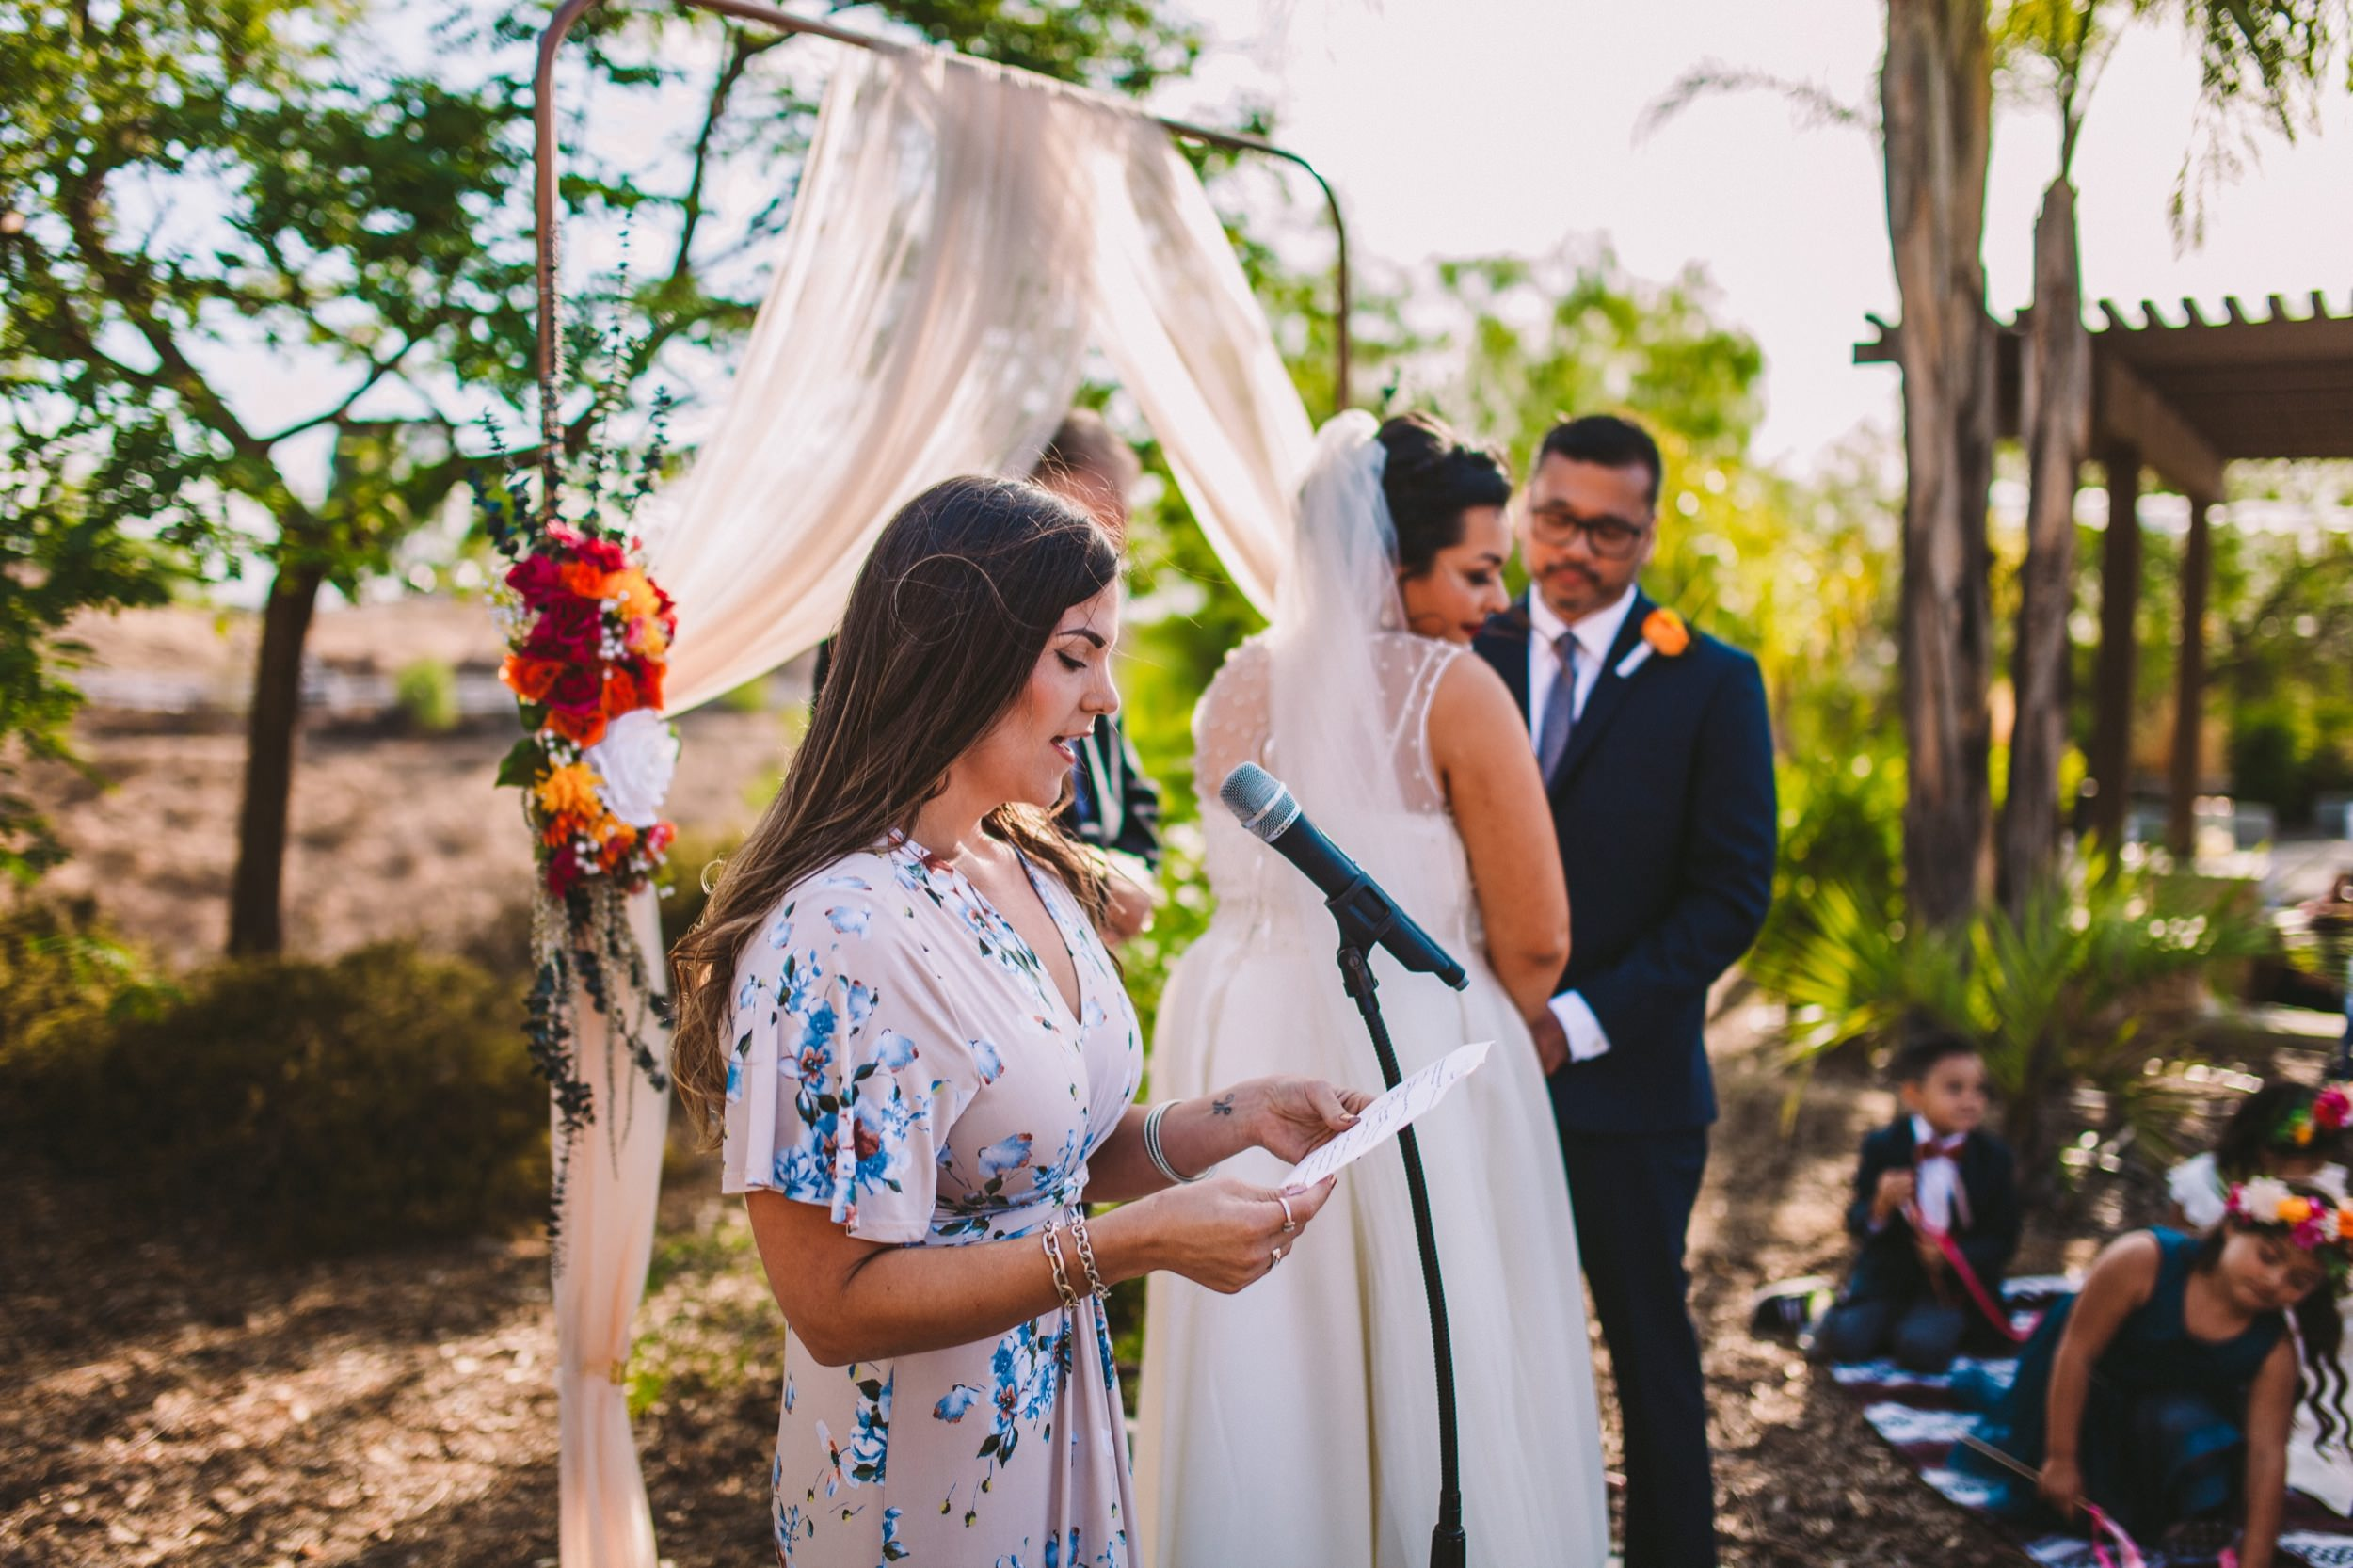 Intimate, Relaxed & Colorful Wedding Photography in Temecula-201.jpg